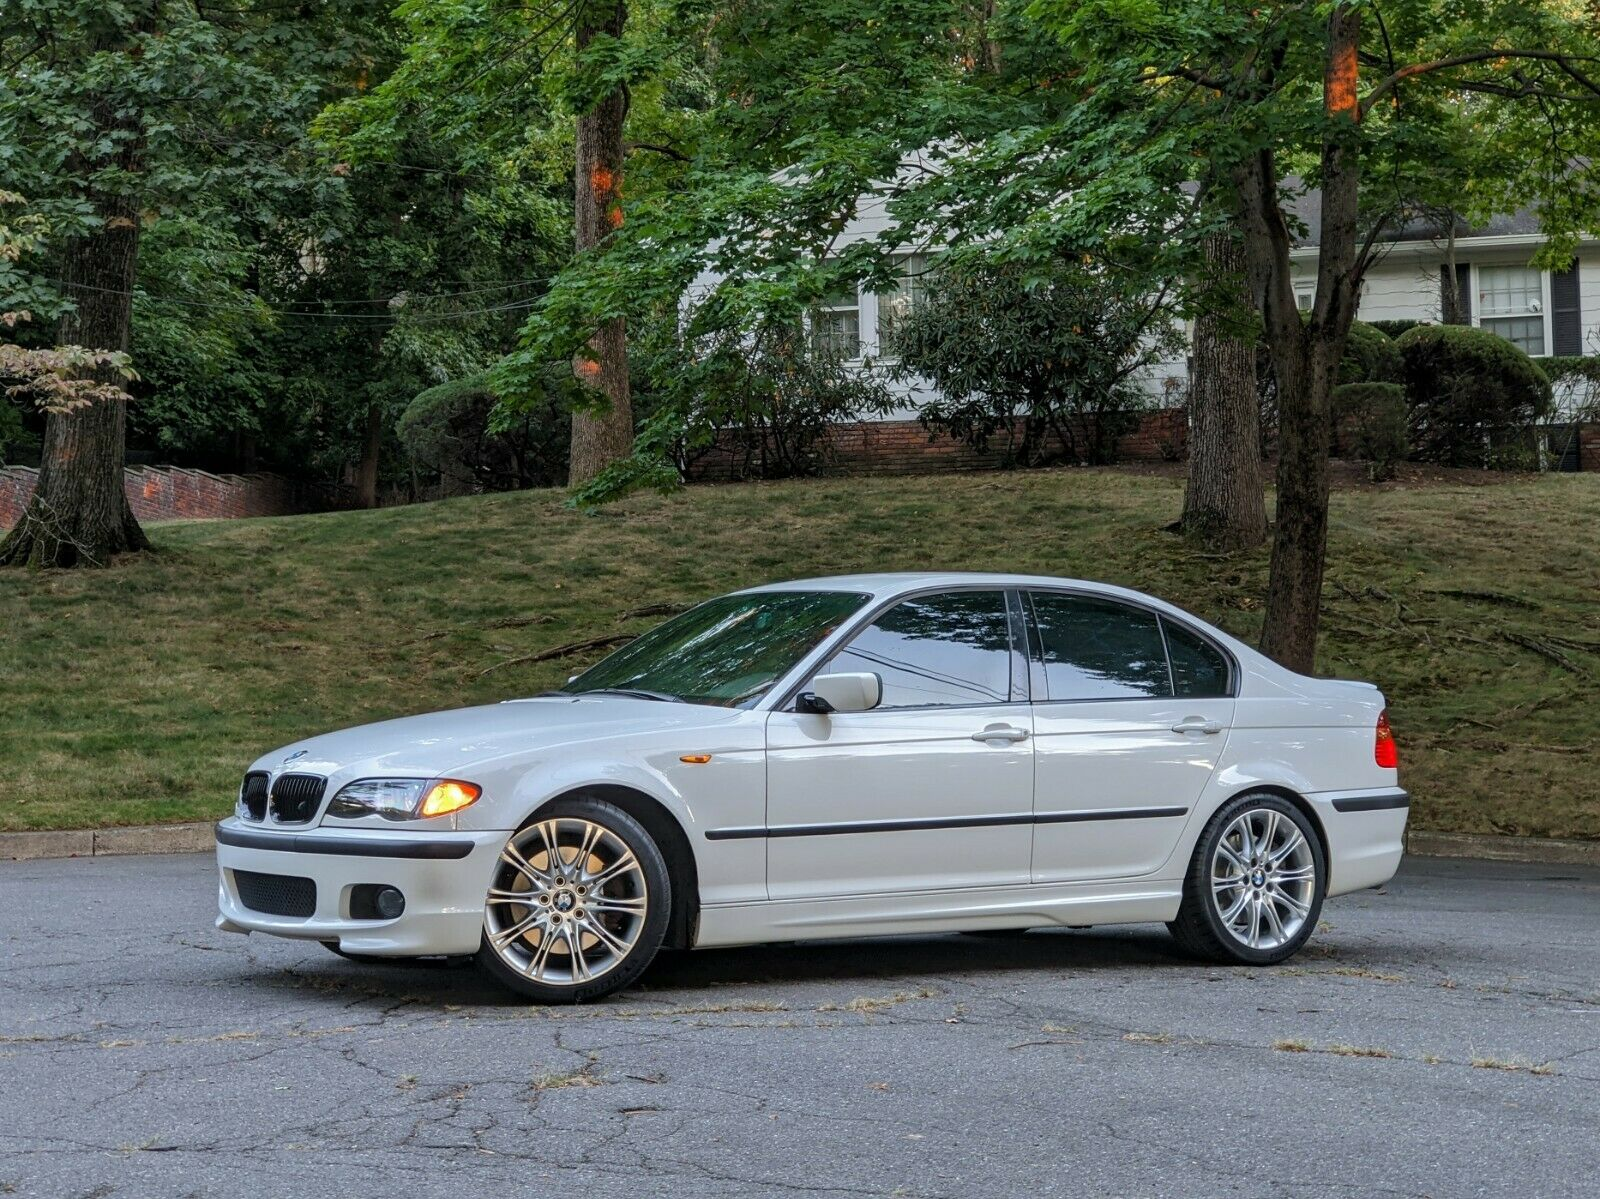 E46 German Cars For Sale Blog